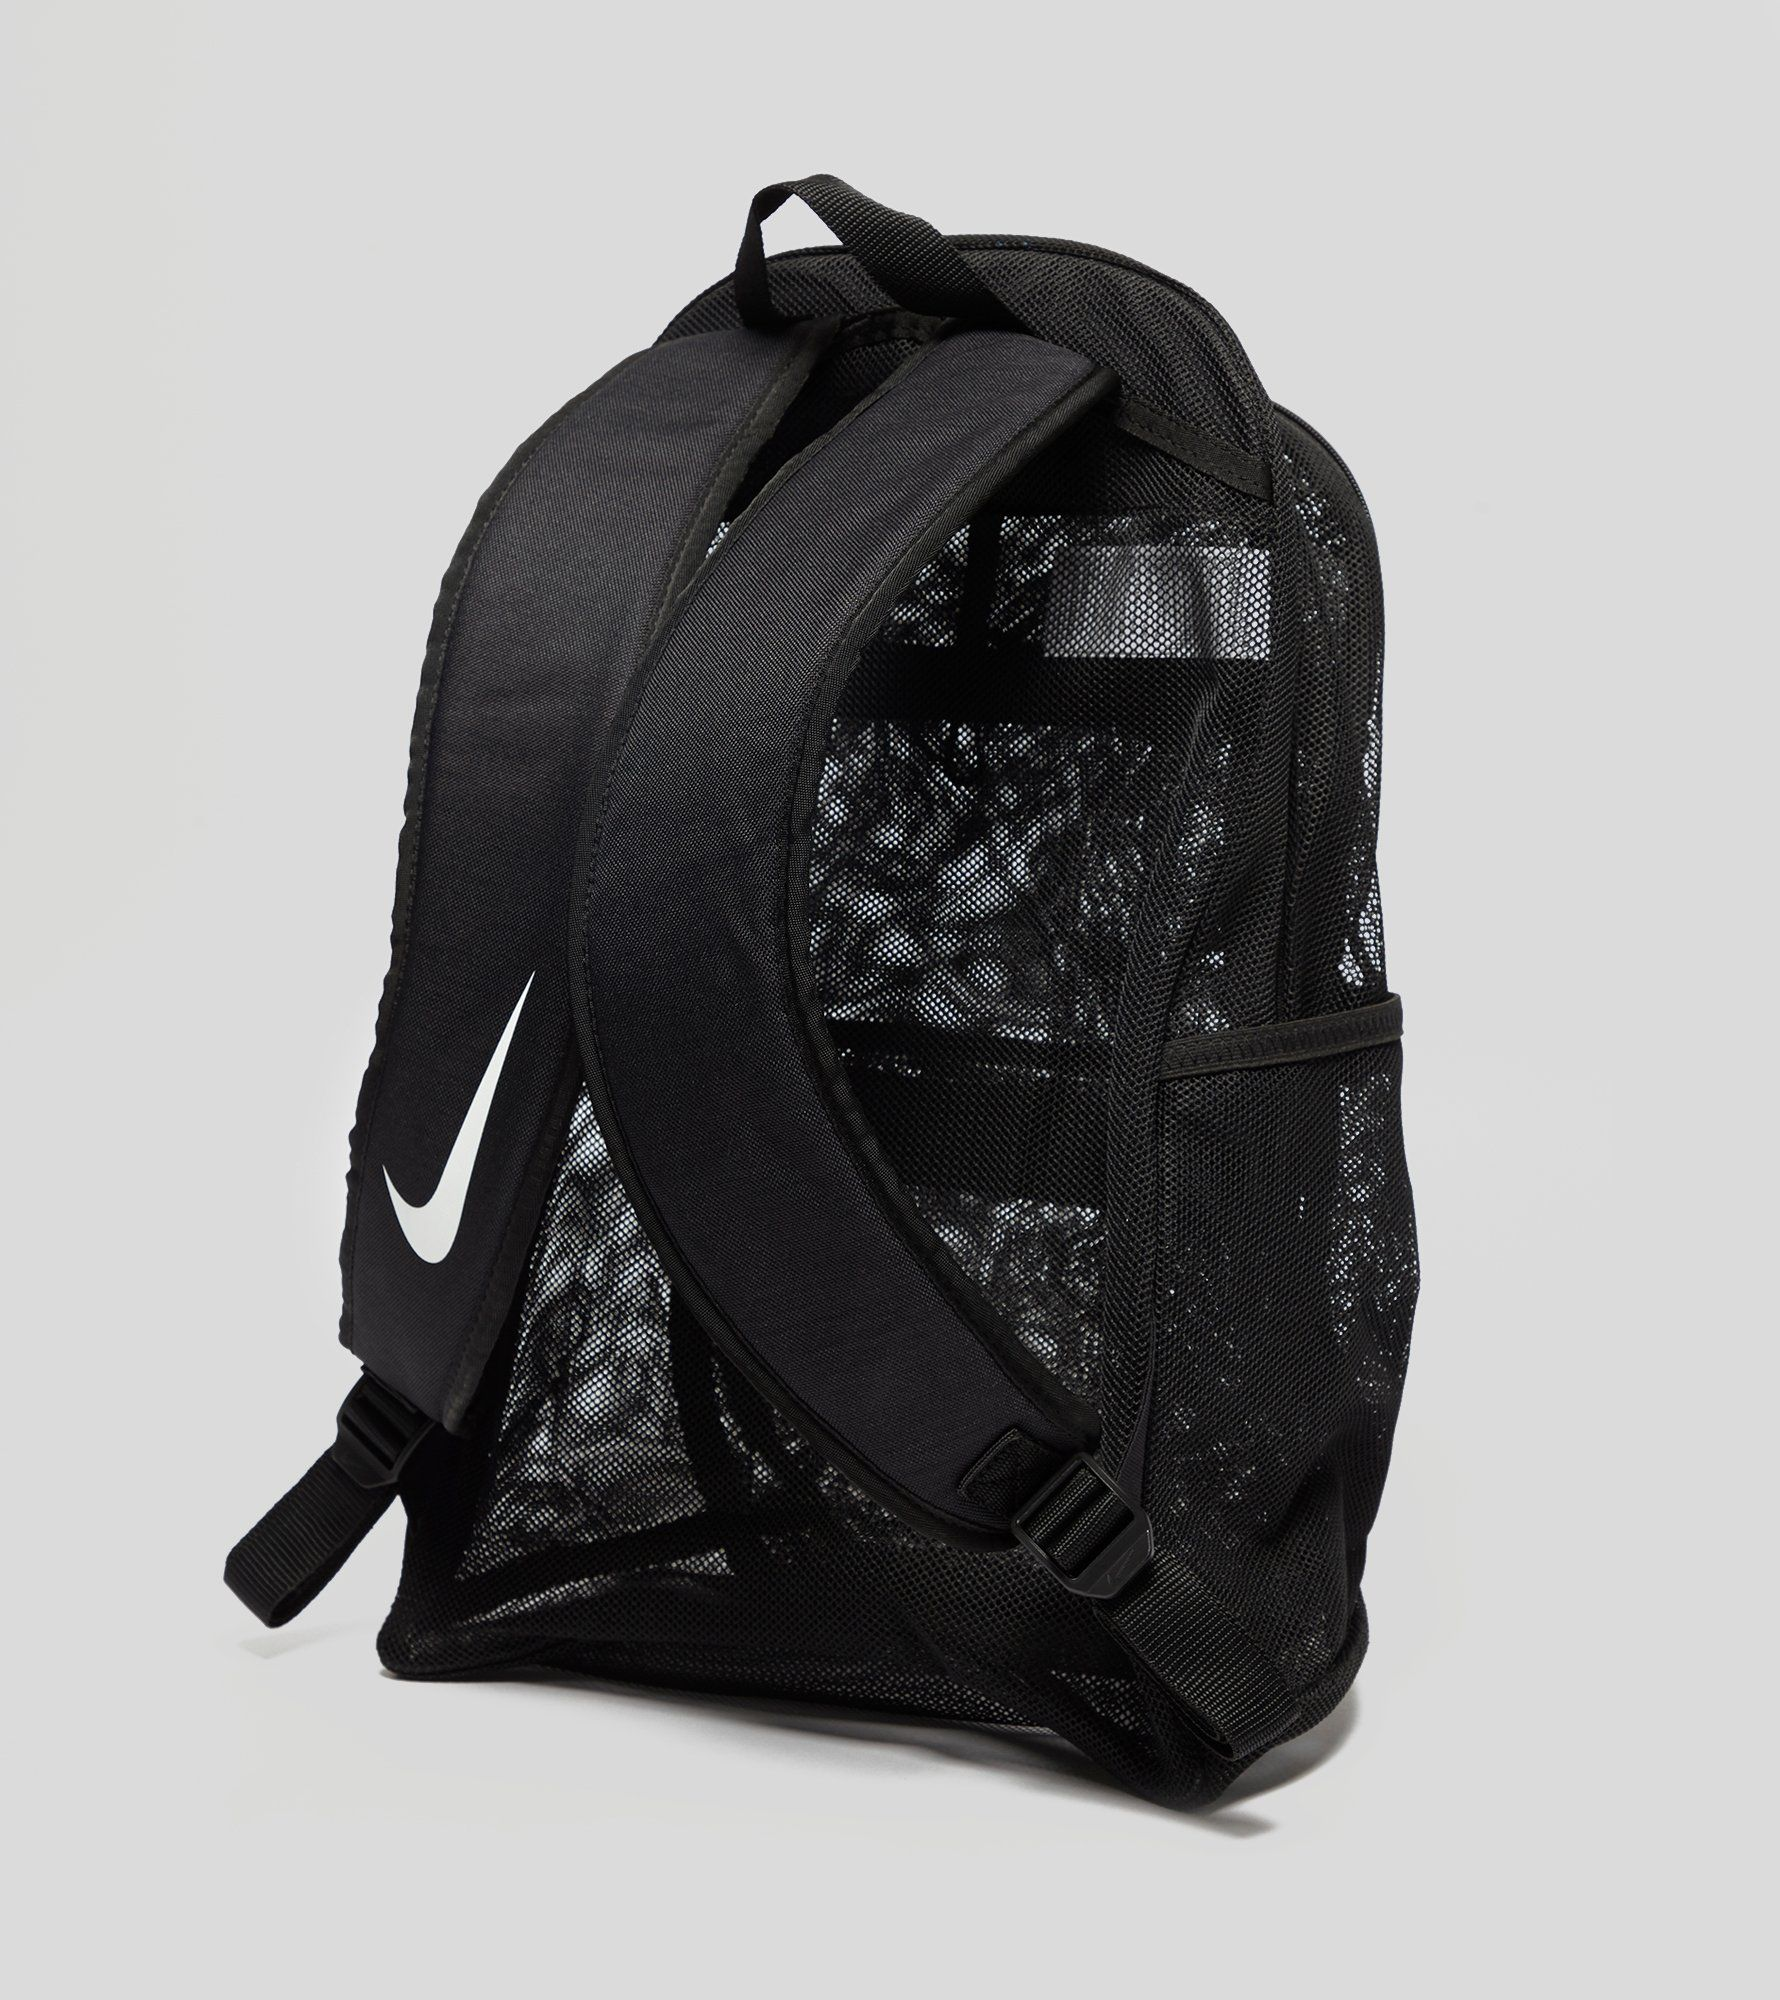 9151b2768bd7 Mesh Backpack Jordan- Fenix Toulouse Handball